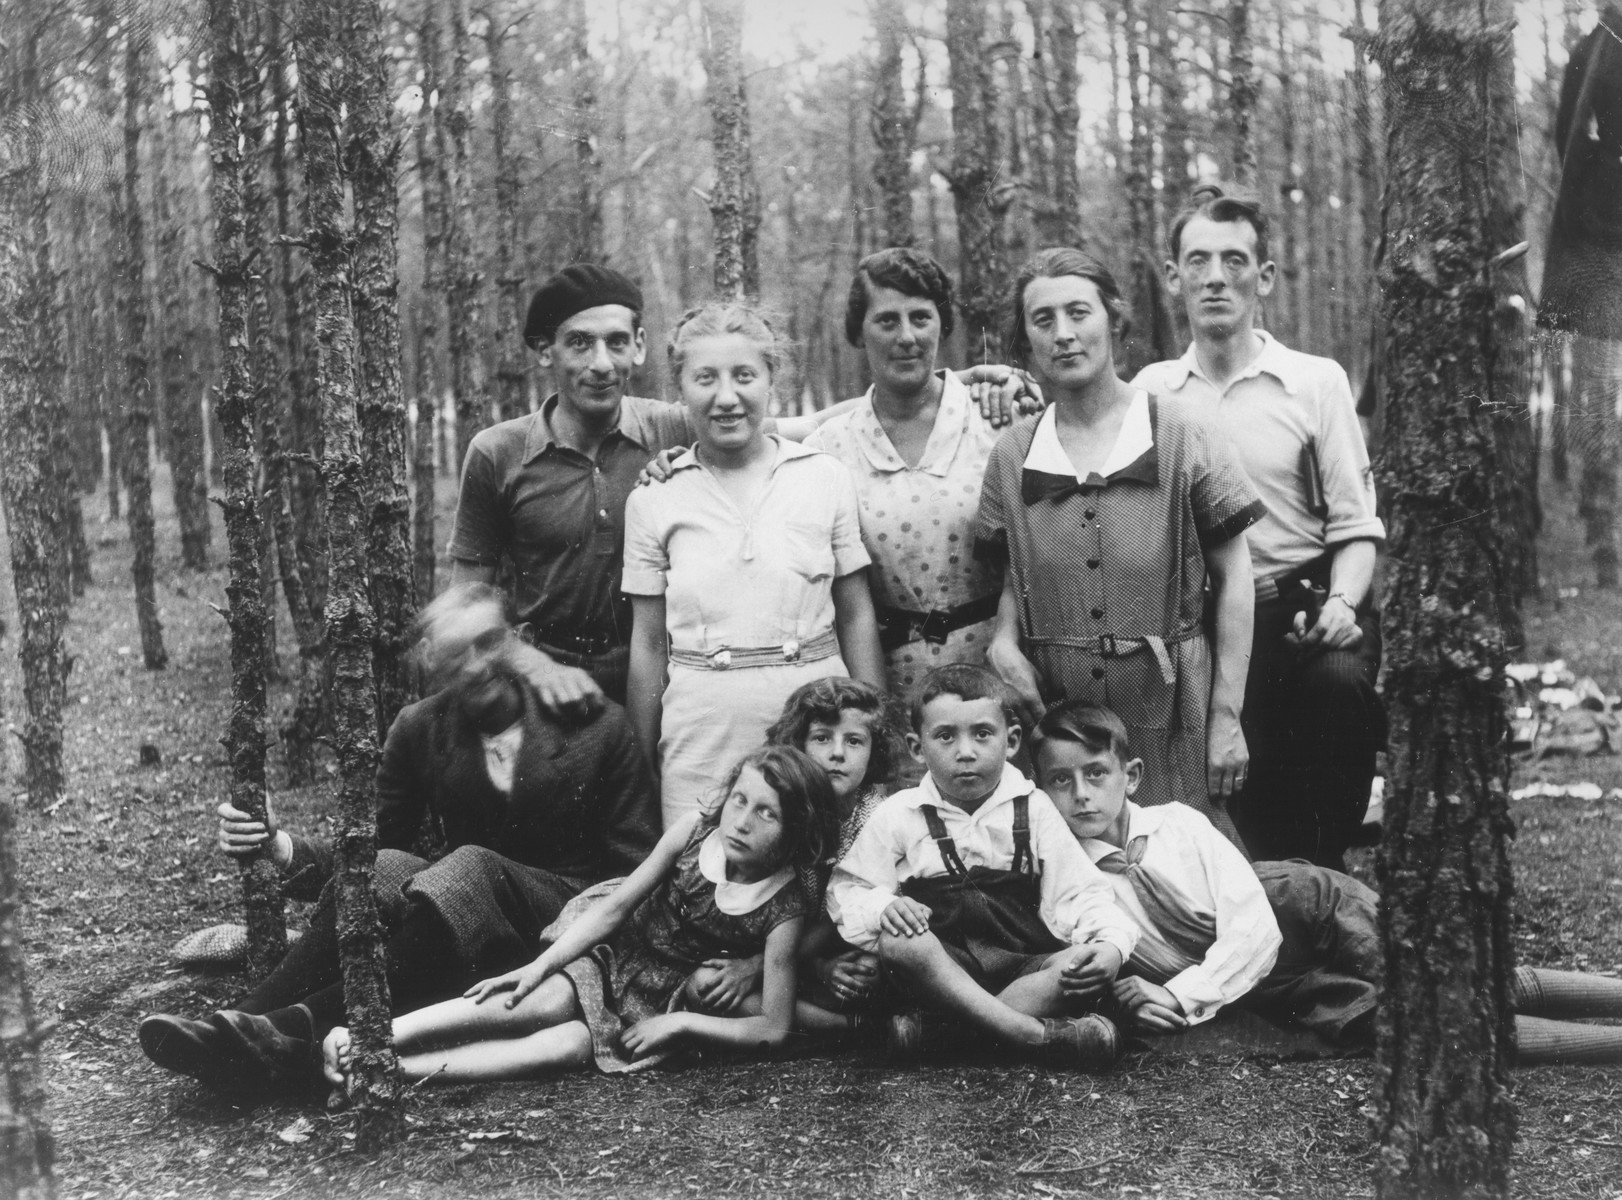 Group portrait of members of an extended Jewish family on an outing to the Wolboz Forest near Piotrkow Trybunalski, Poland.  Pictured are members of the Wolrajch family.  The photograph was taken during the visit of a cousin, Helen Tolep, from the U.S.  Pictured in the back row from left to right are: Joel Wolrajch, Helen Tolep, Rachel Wolrajch (wife of Hersh Lieb), Chia Sura Wolrajch and Hersh Lieb Wolrajch.  Sitting in front are: Shaya Wolrajch (blurred), Rachel Fish, Ginka Wolrajch, wolf, and Chiemic Wolrajch.